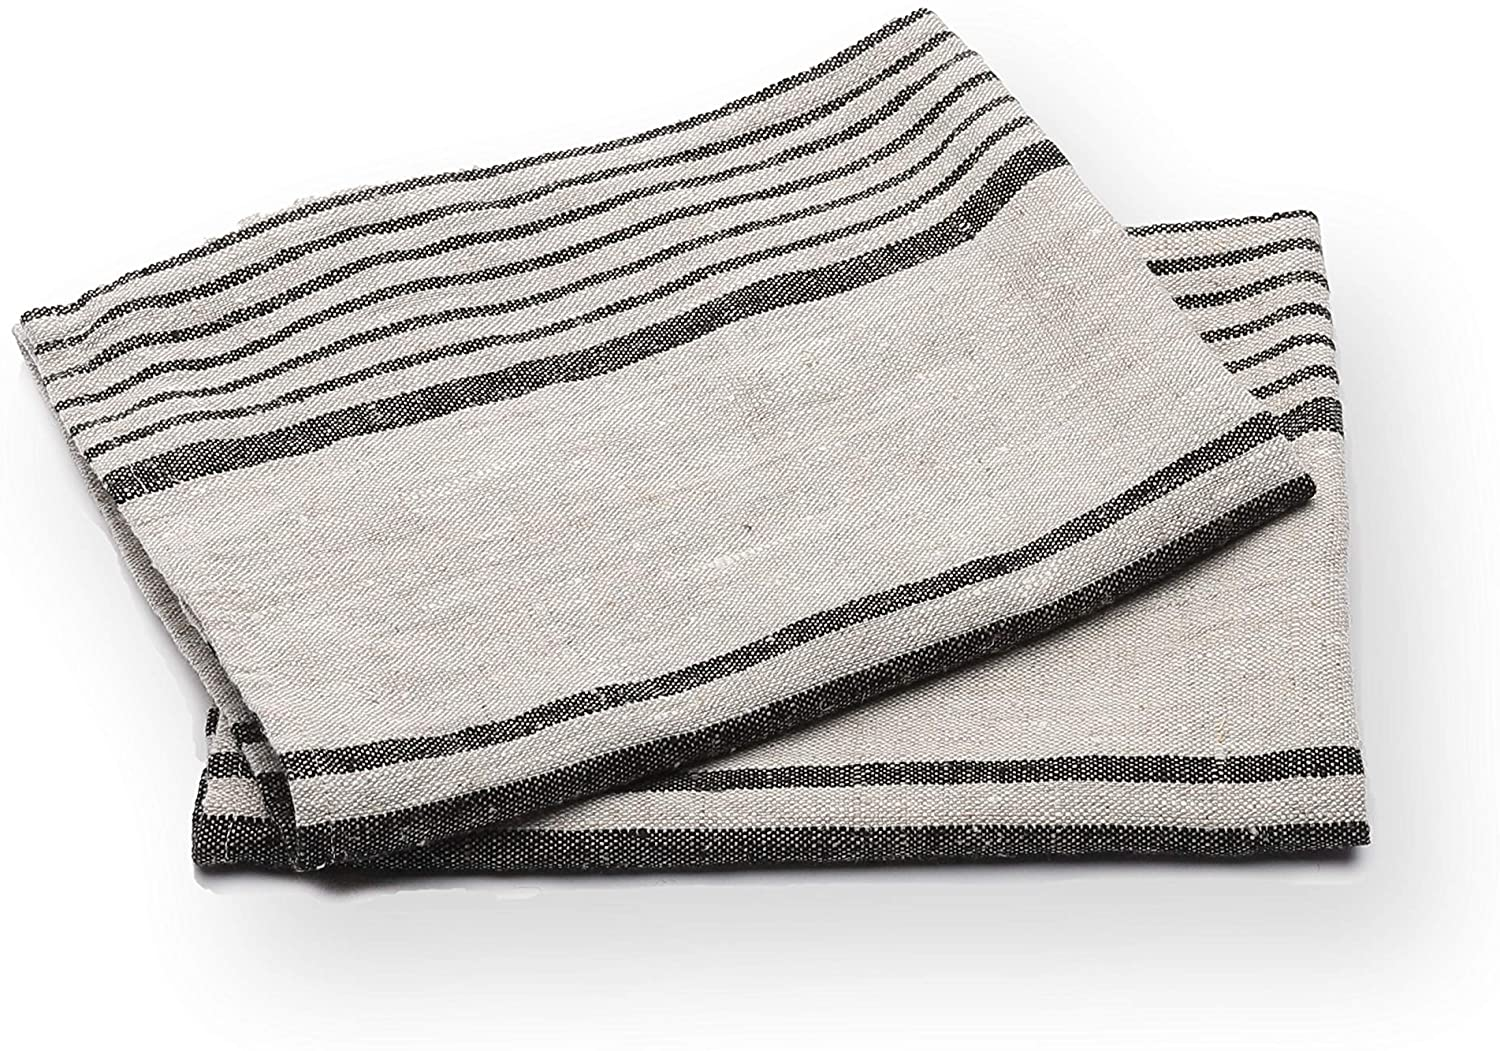 Amazon Com Linenme Set Of 2 Provence Linen Hand Towels Standard Black Natural Striped Prewashed 100 Linen Made In Europe Produced From European Linen Home Kitchen